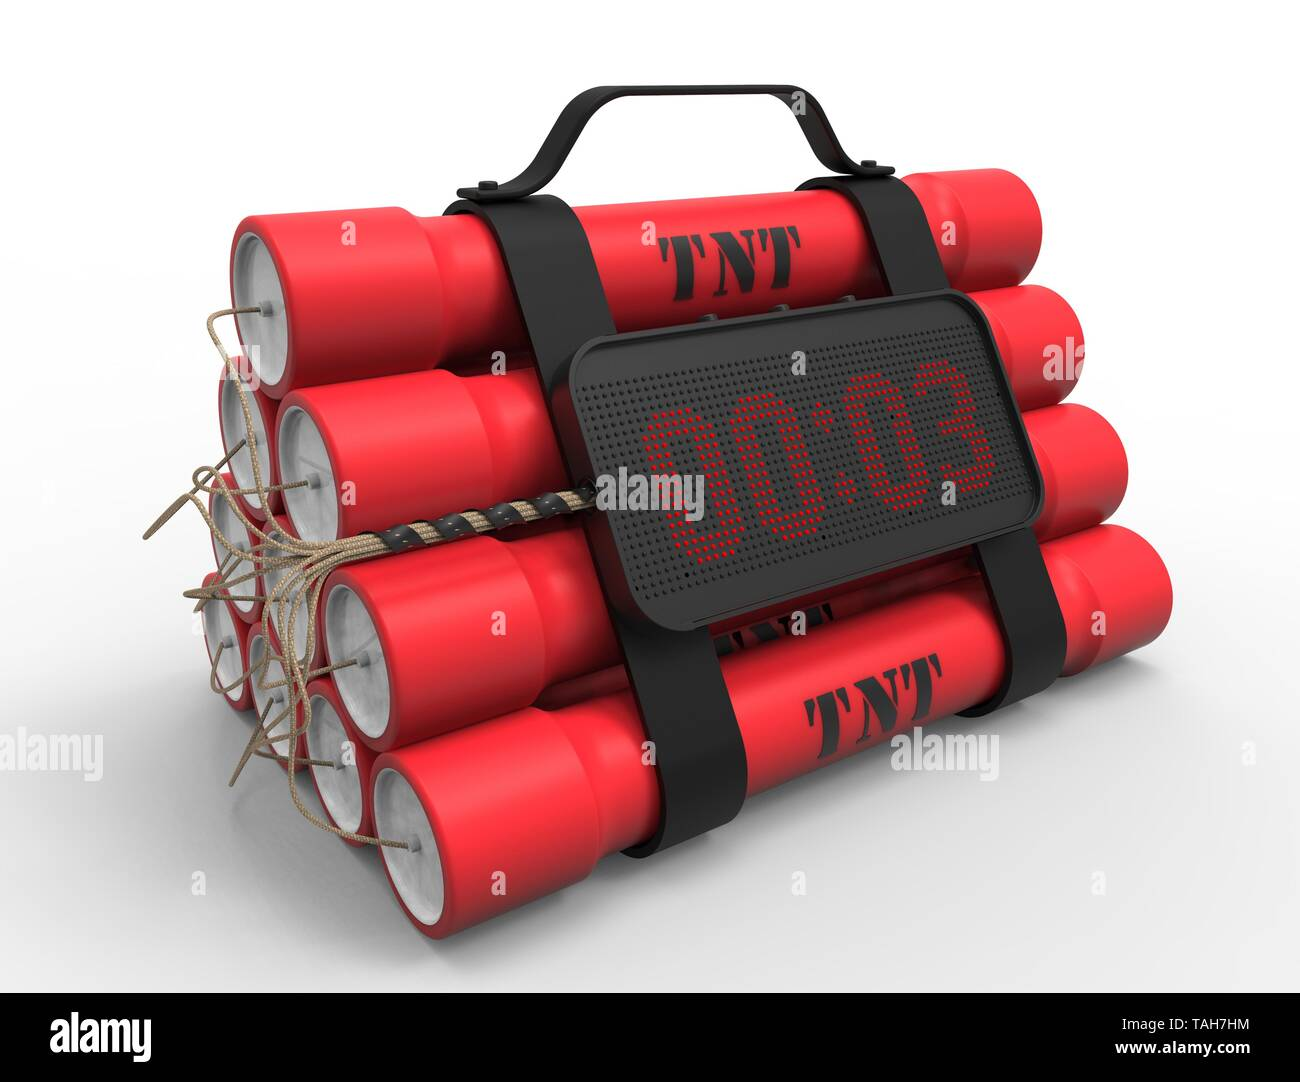 3d Illustration 3d Rendering Of Tnt Dynamite Bomb With A Timer Isolated On White Studio